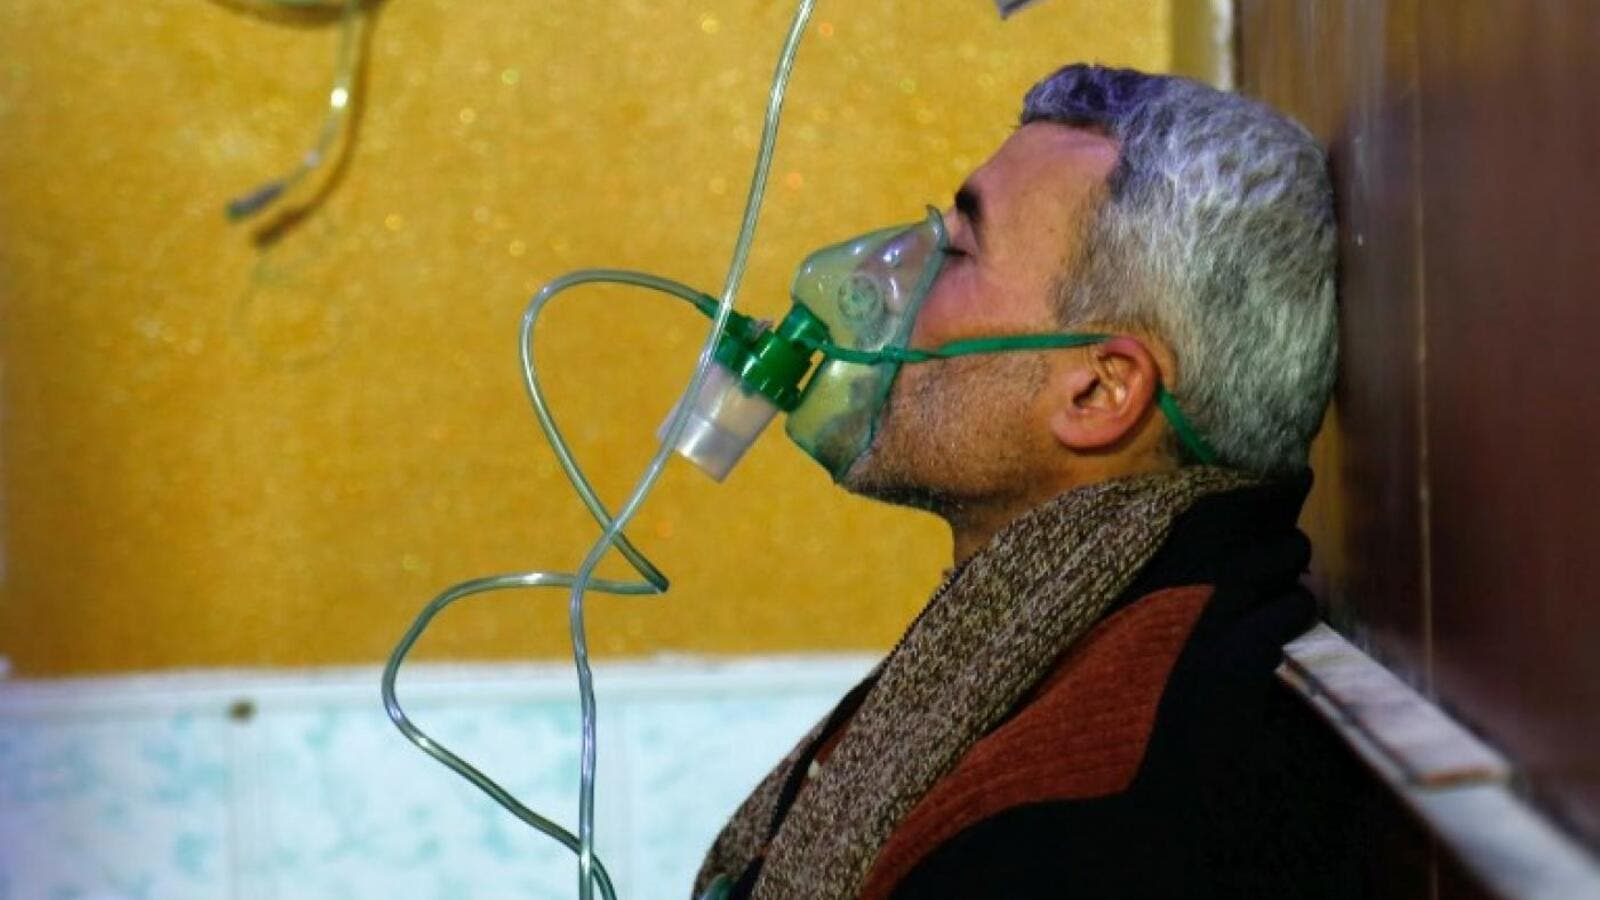 File photo from aftermath of suspected chemical attack in Douma in April. (AFP/ File Photo)